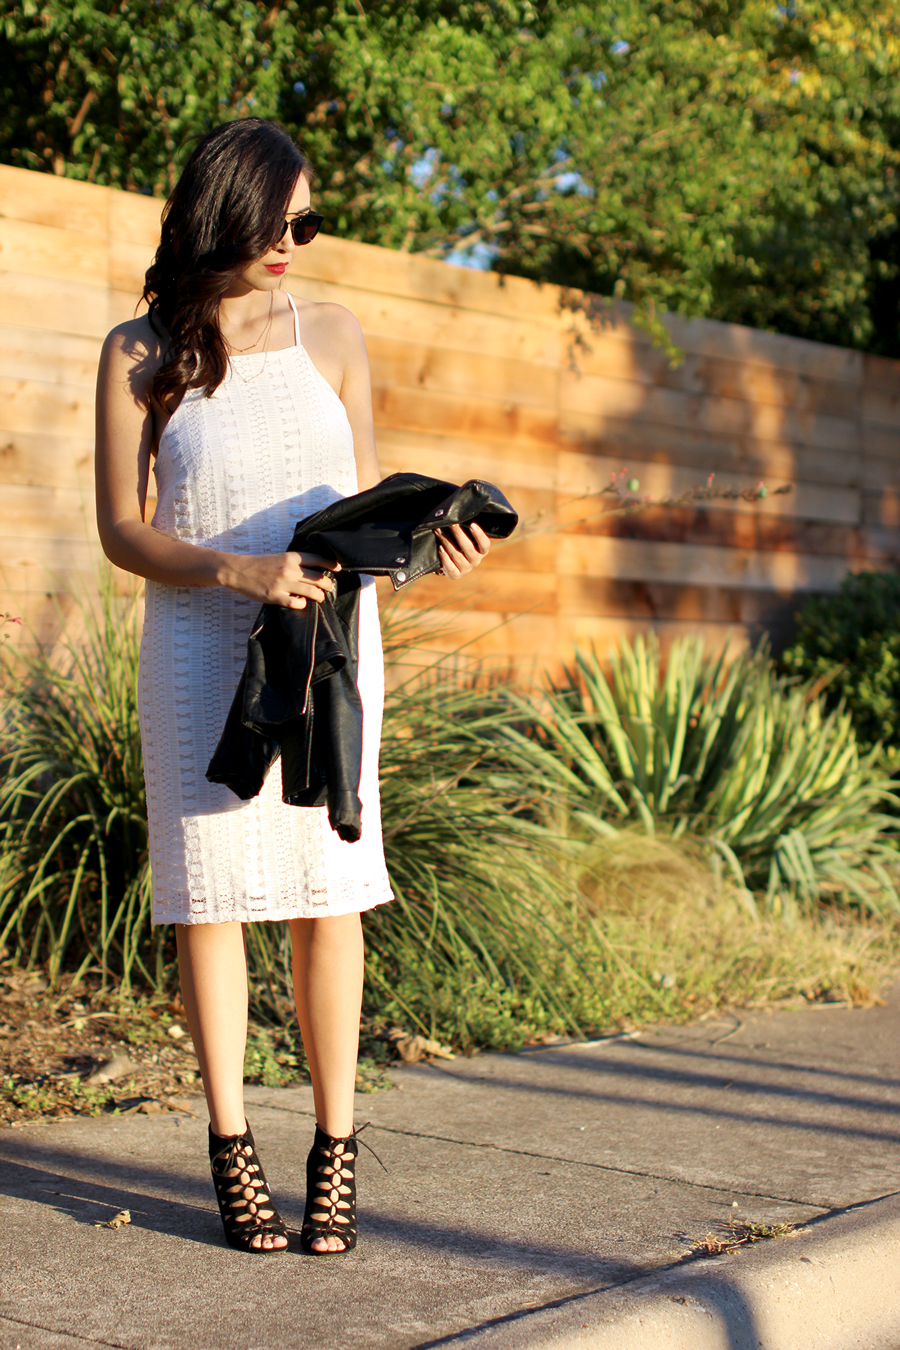 FIXIN-TO-THRILL-WHITE-HALTER-DRESS-STRAPPY-HEELS-LEATHER-TREND-FALL-OCTOBER-ATX-AUSTIN-STYLE-BLOG-FW15-TRENDY-CHIC-GLAM-TEXAS-9